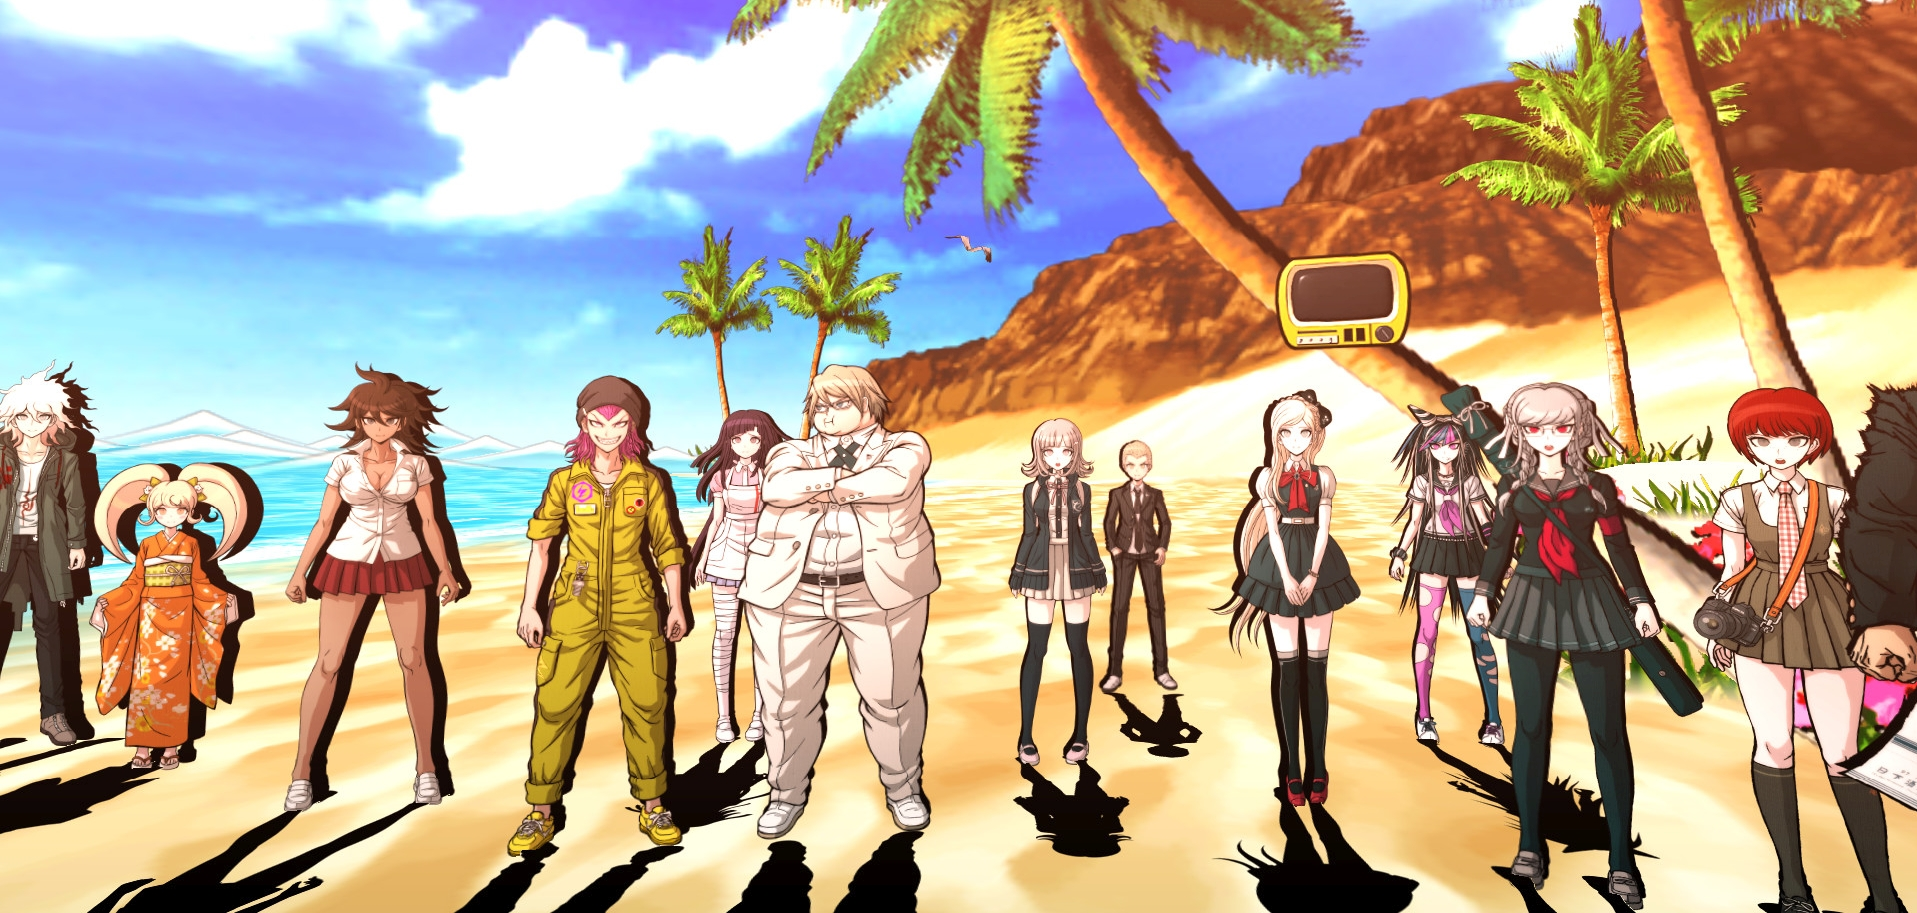 Danganronpa 2: Goodbye Despair Mobile Version Launches On August 20 In Japan